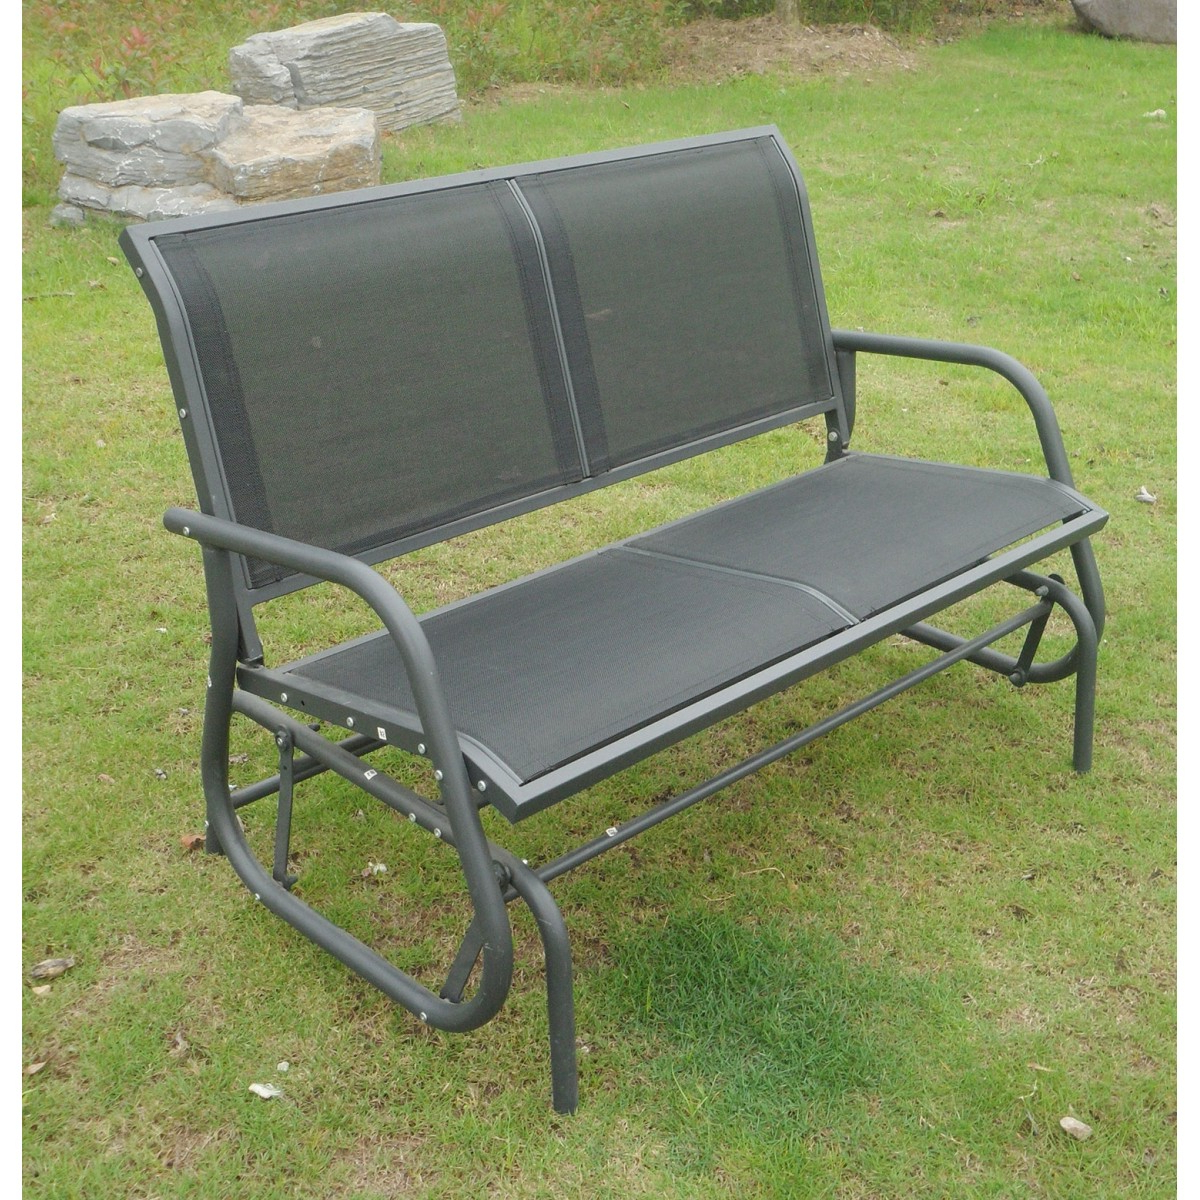 Popular Grey Garden Seat 2 Seater Glider Rocking Bench & Mesh Intended For Twin Seat Glider Benches (View 20 of 31)